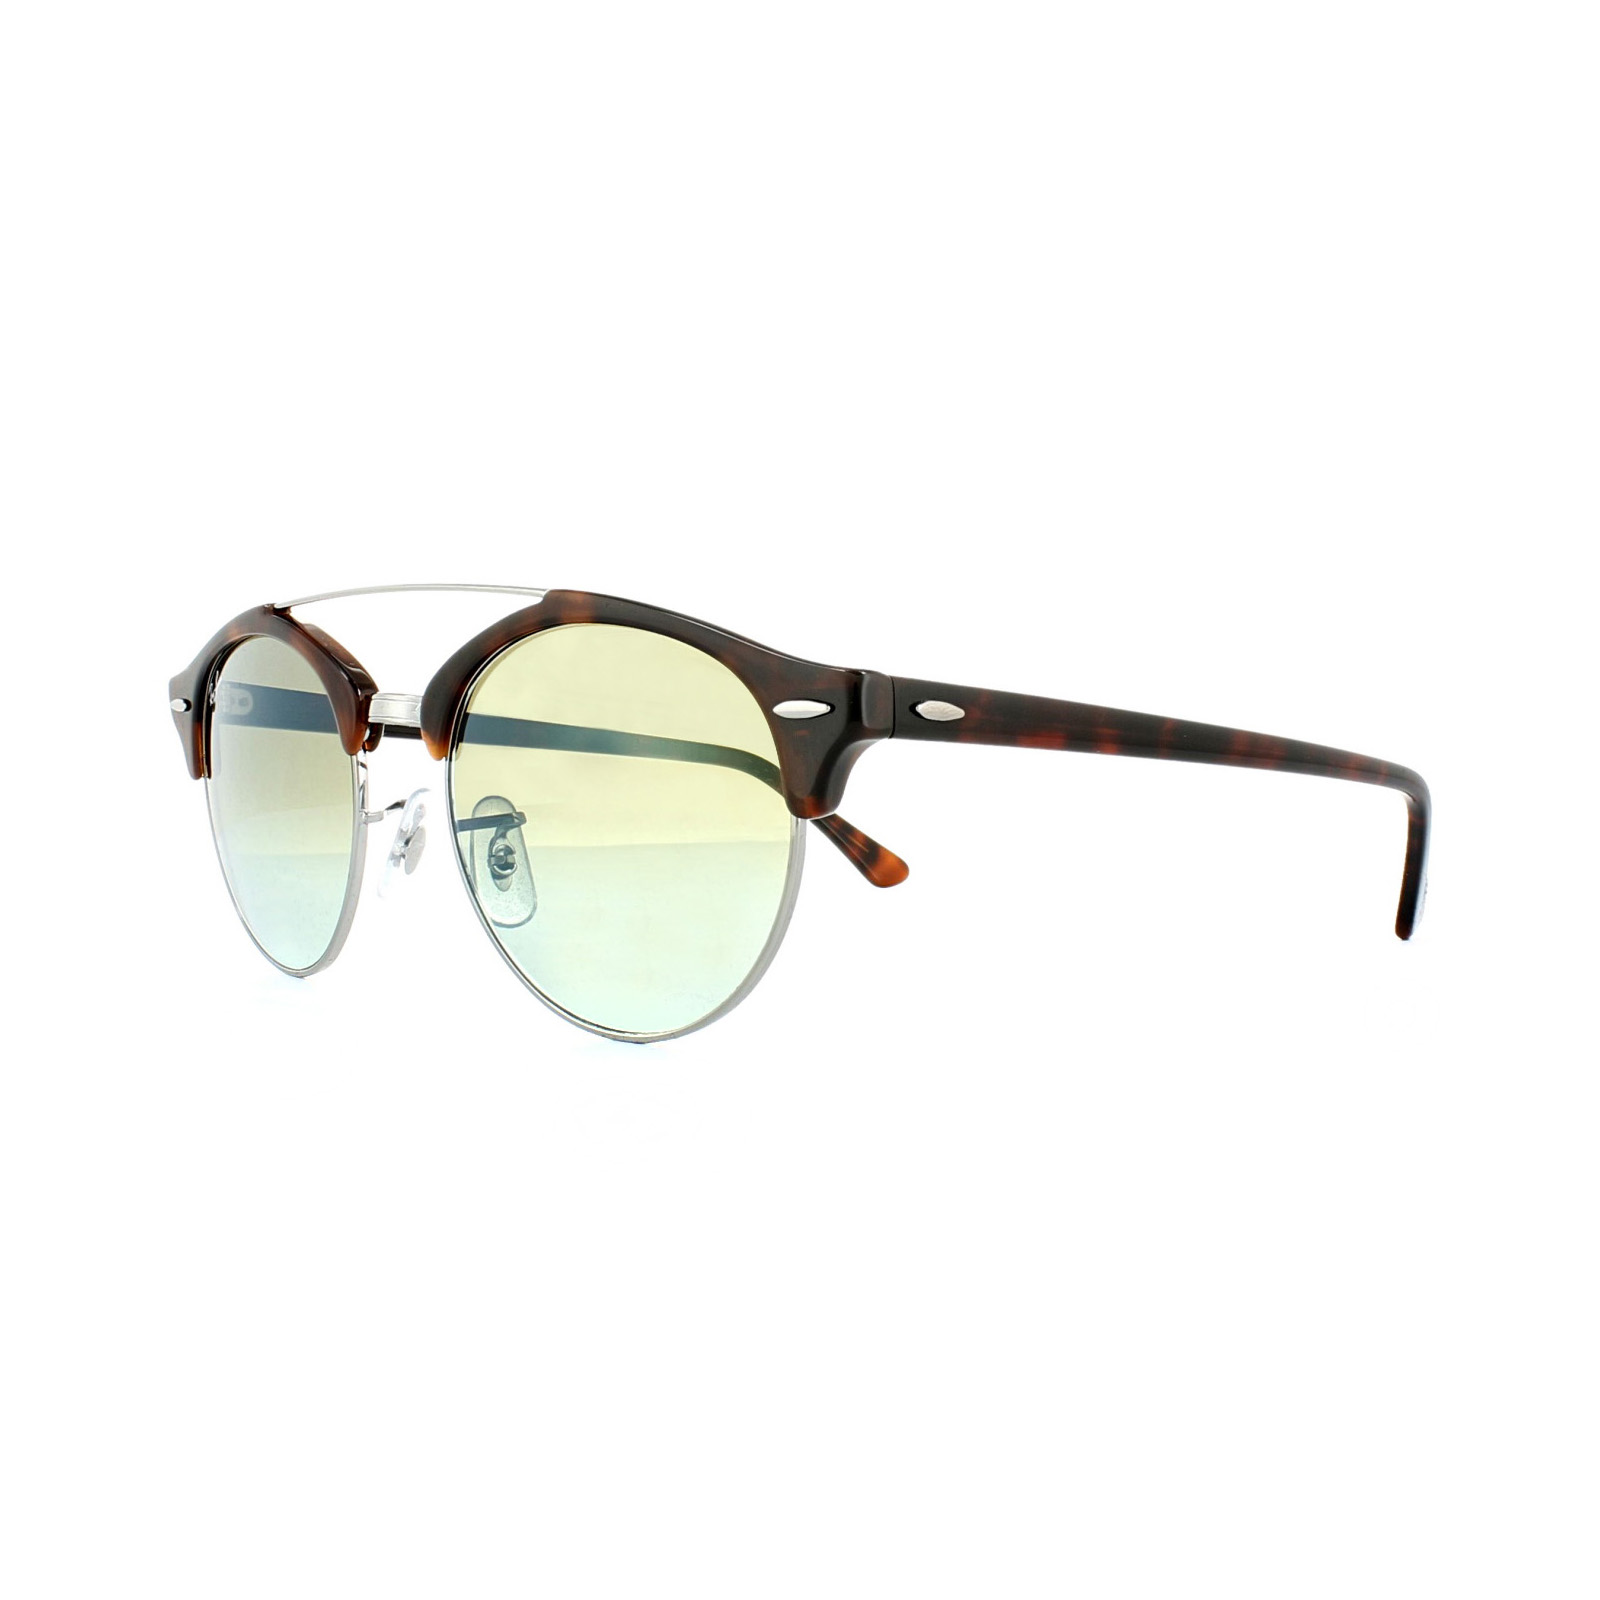 9f3ee86d7927a Sentinel Ray-Ban Sunglasses Clubround Double Bridge 4346 62519J Havana  Green Gradient